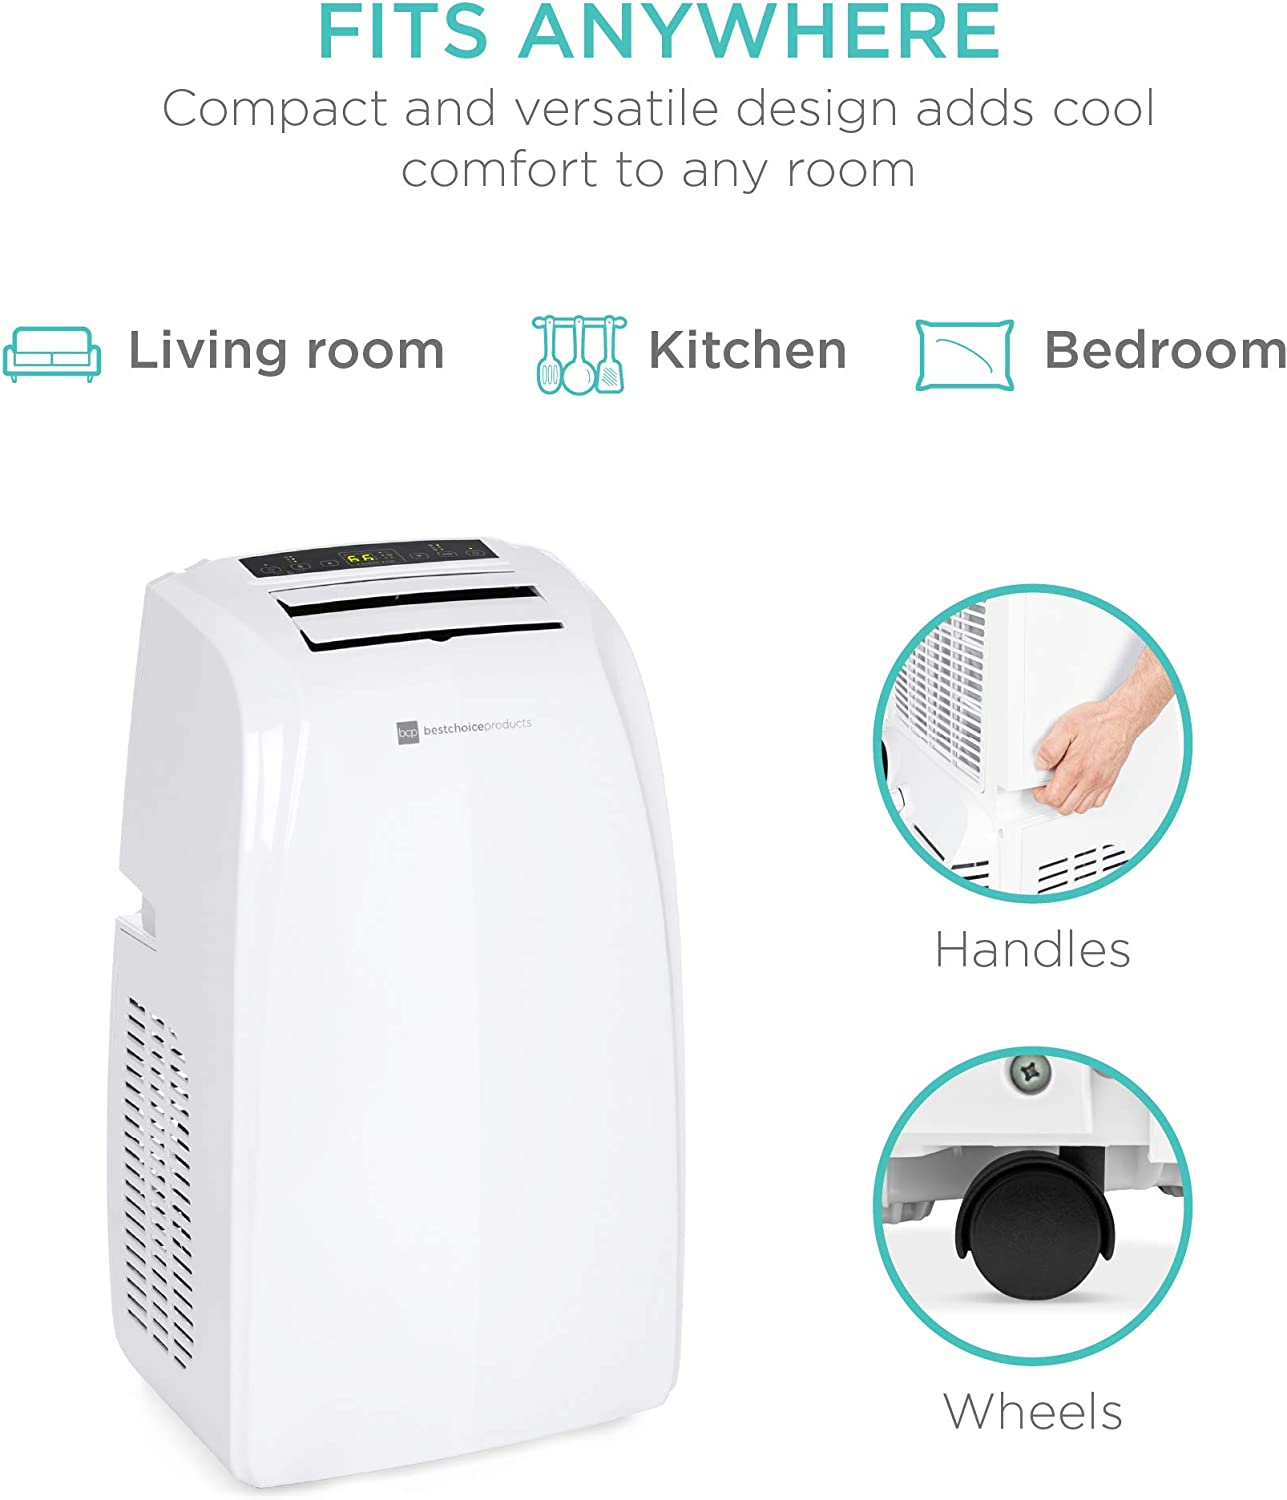 Buy Best Choice Products 14 000 Btu 3 In 1 Portable Air Conditioner Cooling Unit For Rooms Up To 650 Sq Ft Home Bedroom Kitchen W 4 Casters Remote Control Window Vent Kit Led Display Online